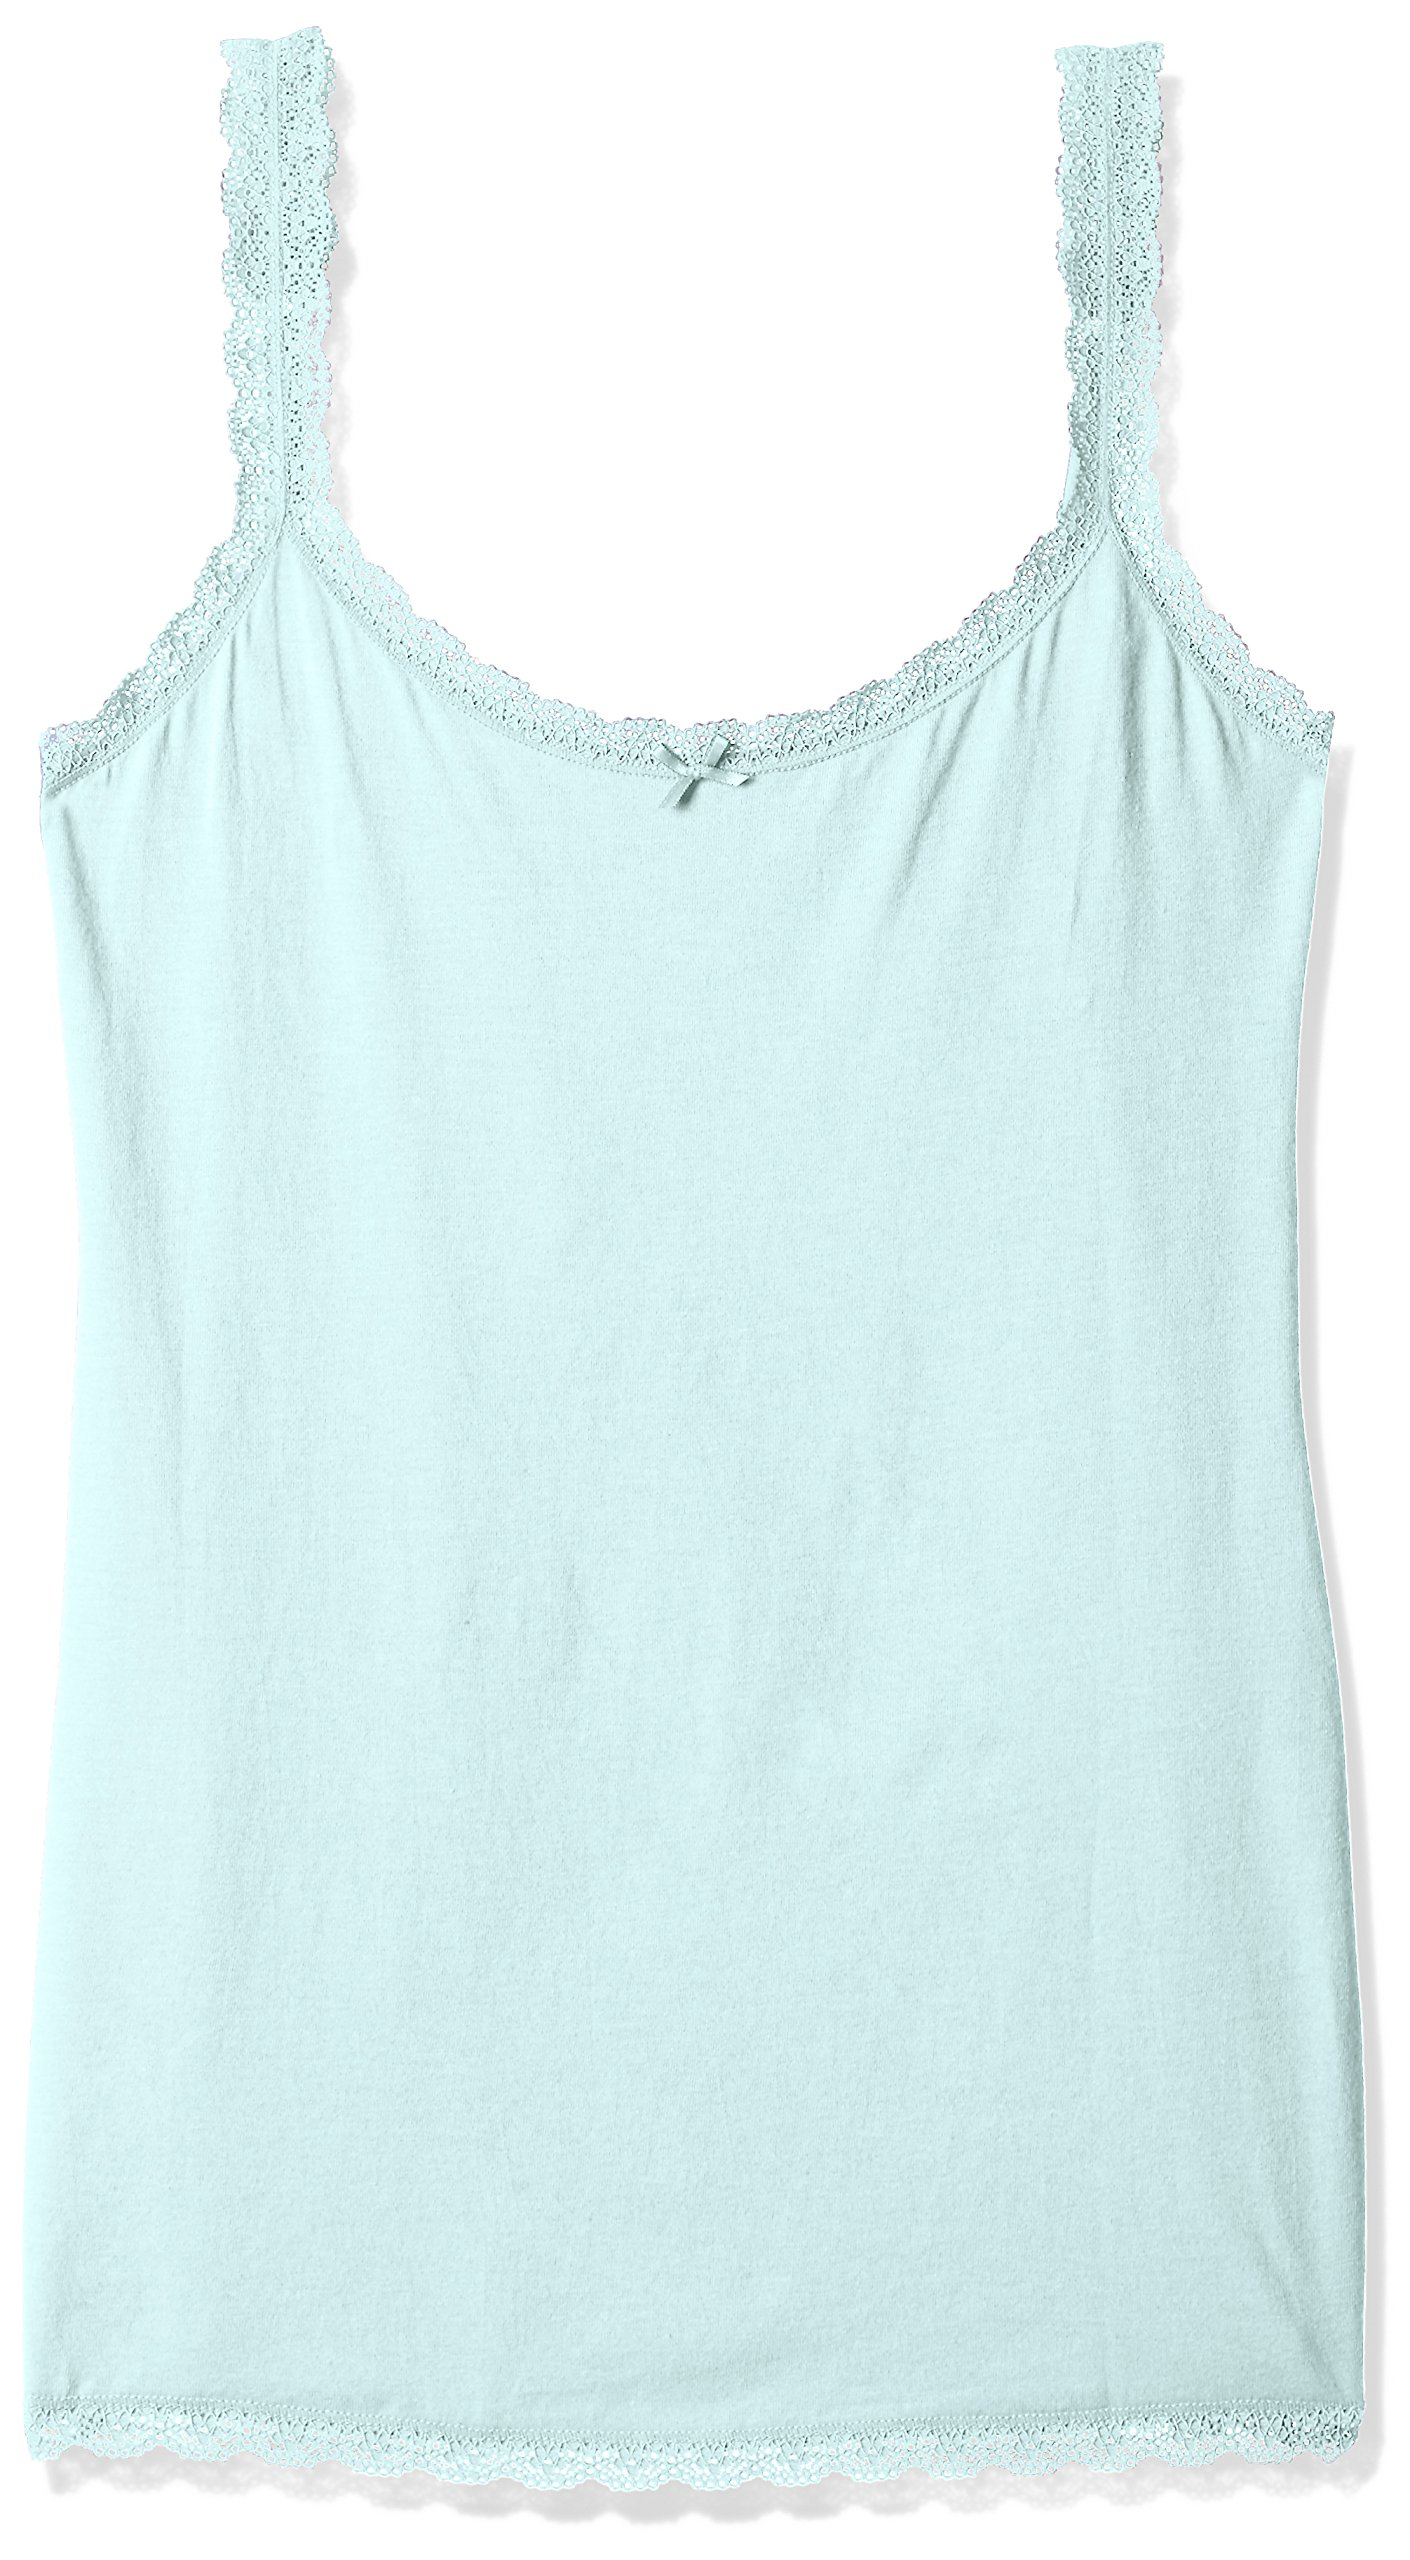 Jockey Women's Cotton Camisole